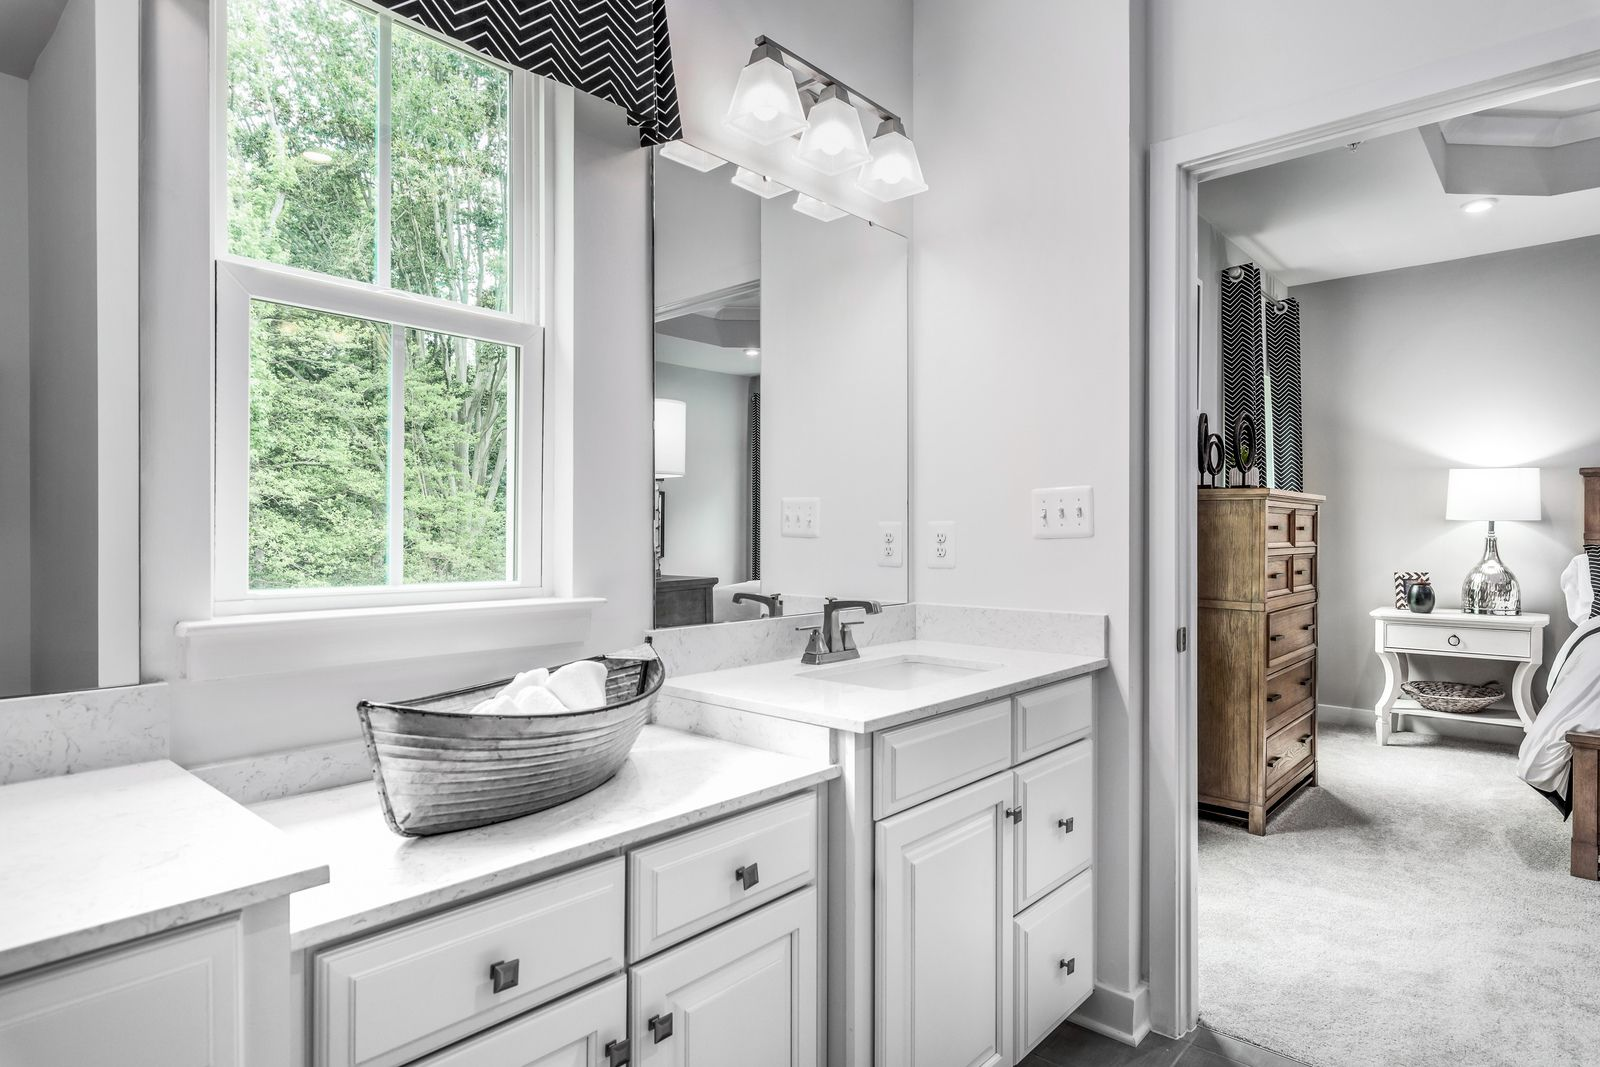 Bathroom featured in the Wexford By Ryan Homes in Baltimore, MD